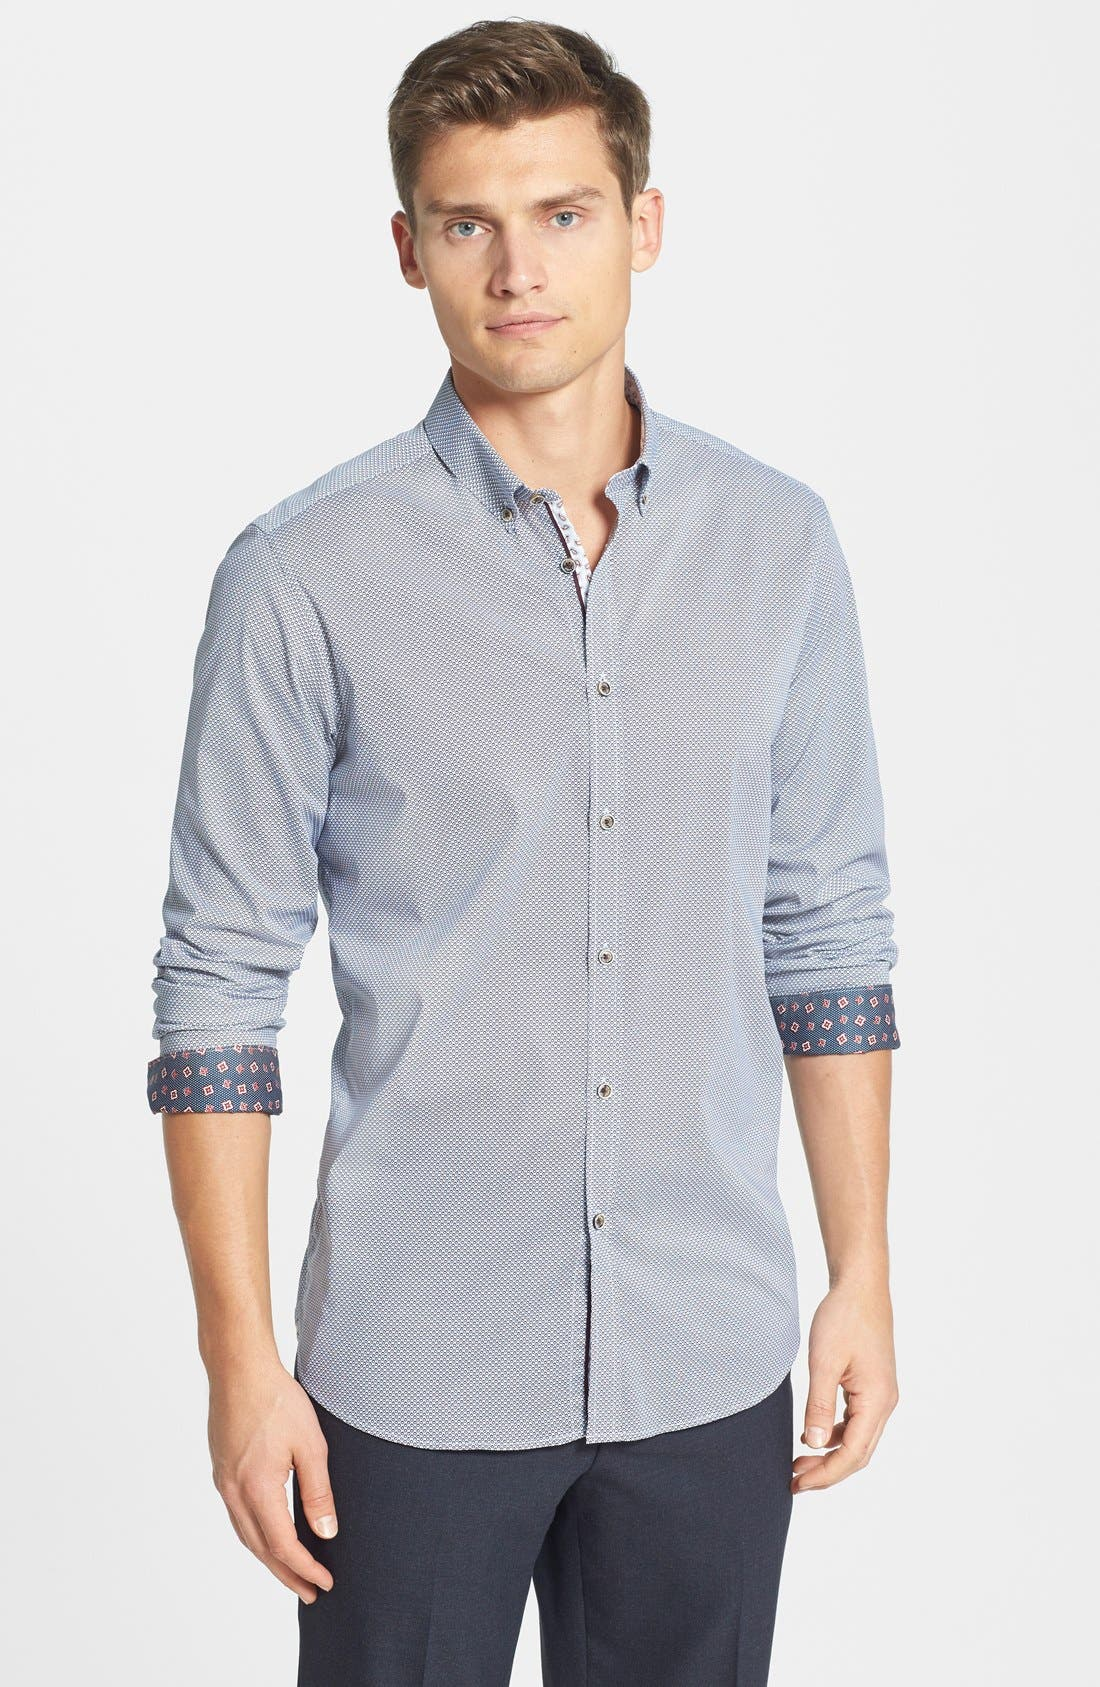 Alternate Image 1 Selected - Ted Baker London 'Bablong' Trim Fit Geometric Sport Shirt